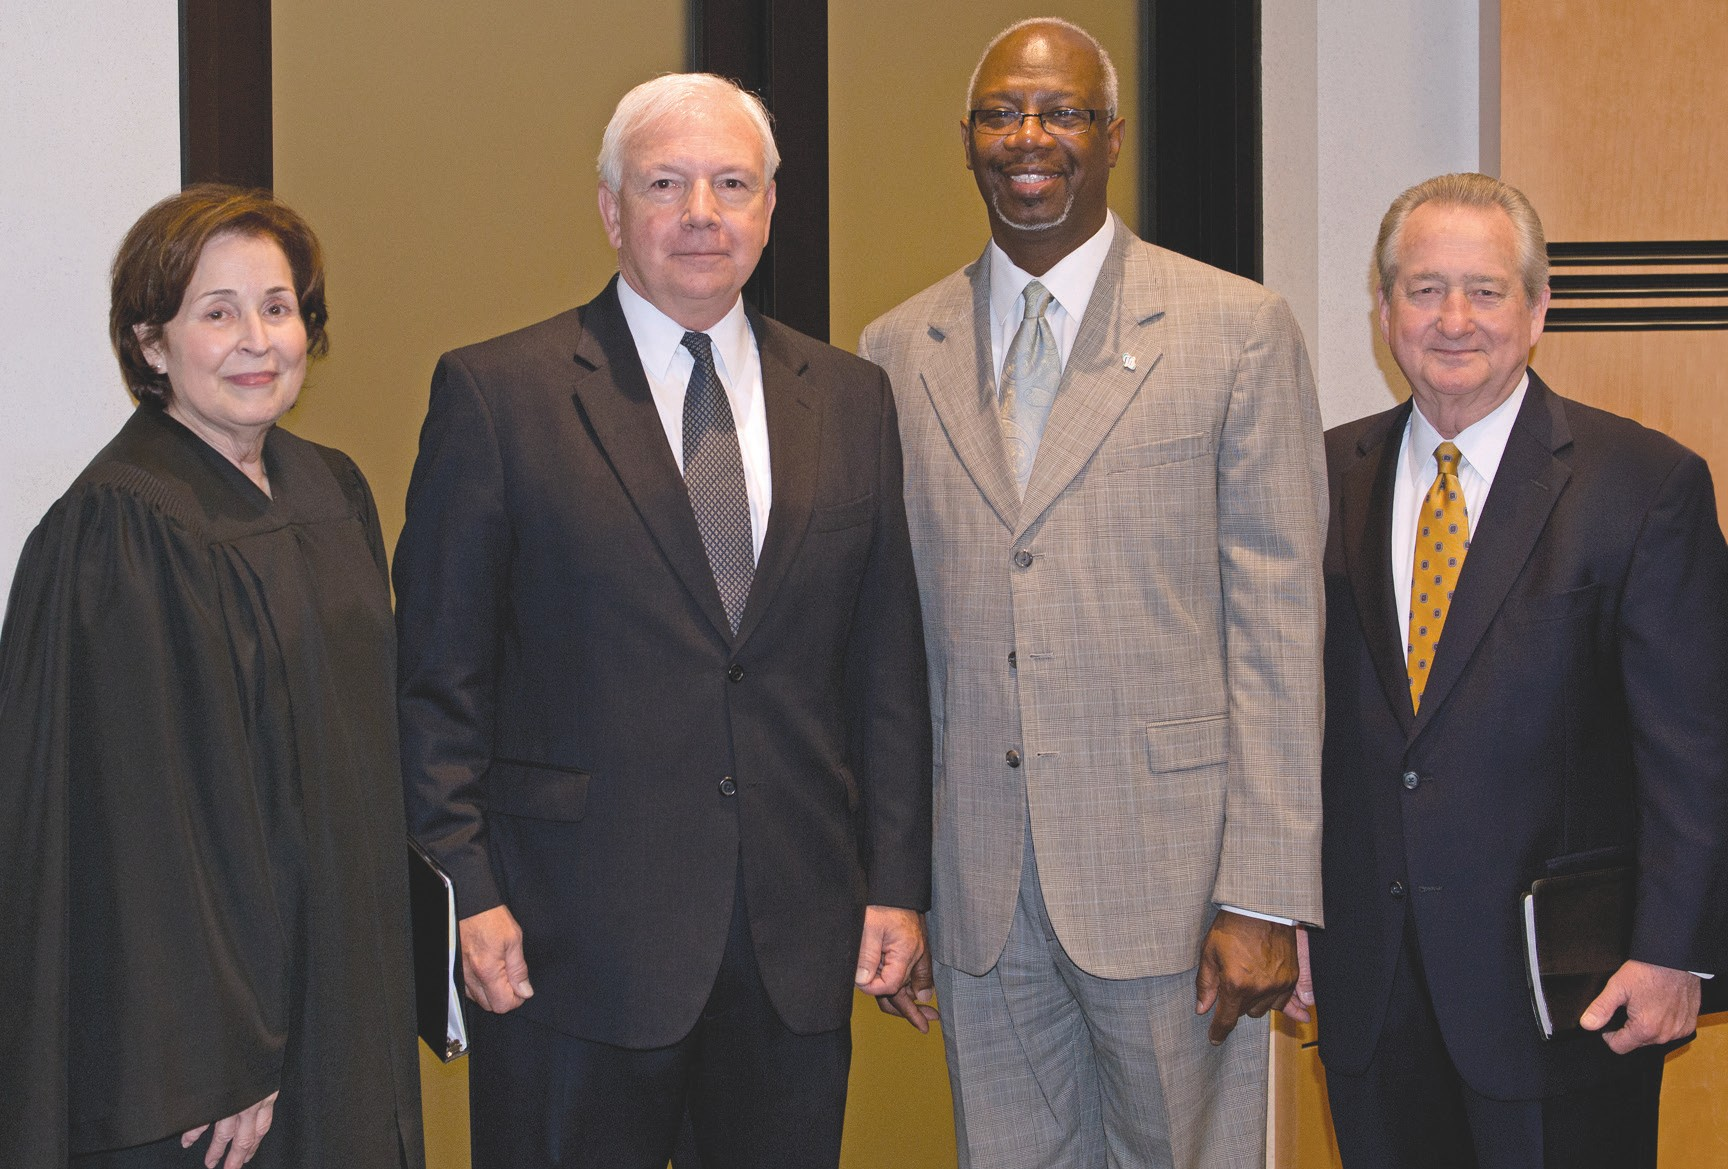 (L-R) Probate Court Judge Nancy K. Aspinwall; Thomas J. Ratcliffe, Jr., STC Board Member; LTG (Ret) William G. Webster, Jr., STC Board Member; Donald Lovette, STC Chairman of the Board of Directors.